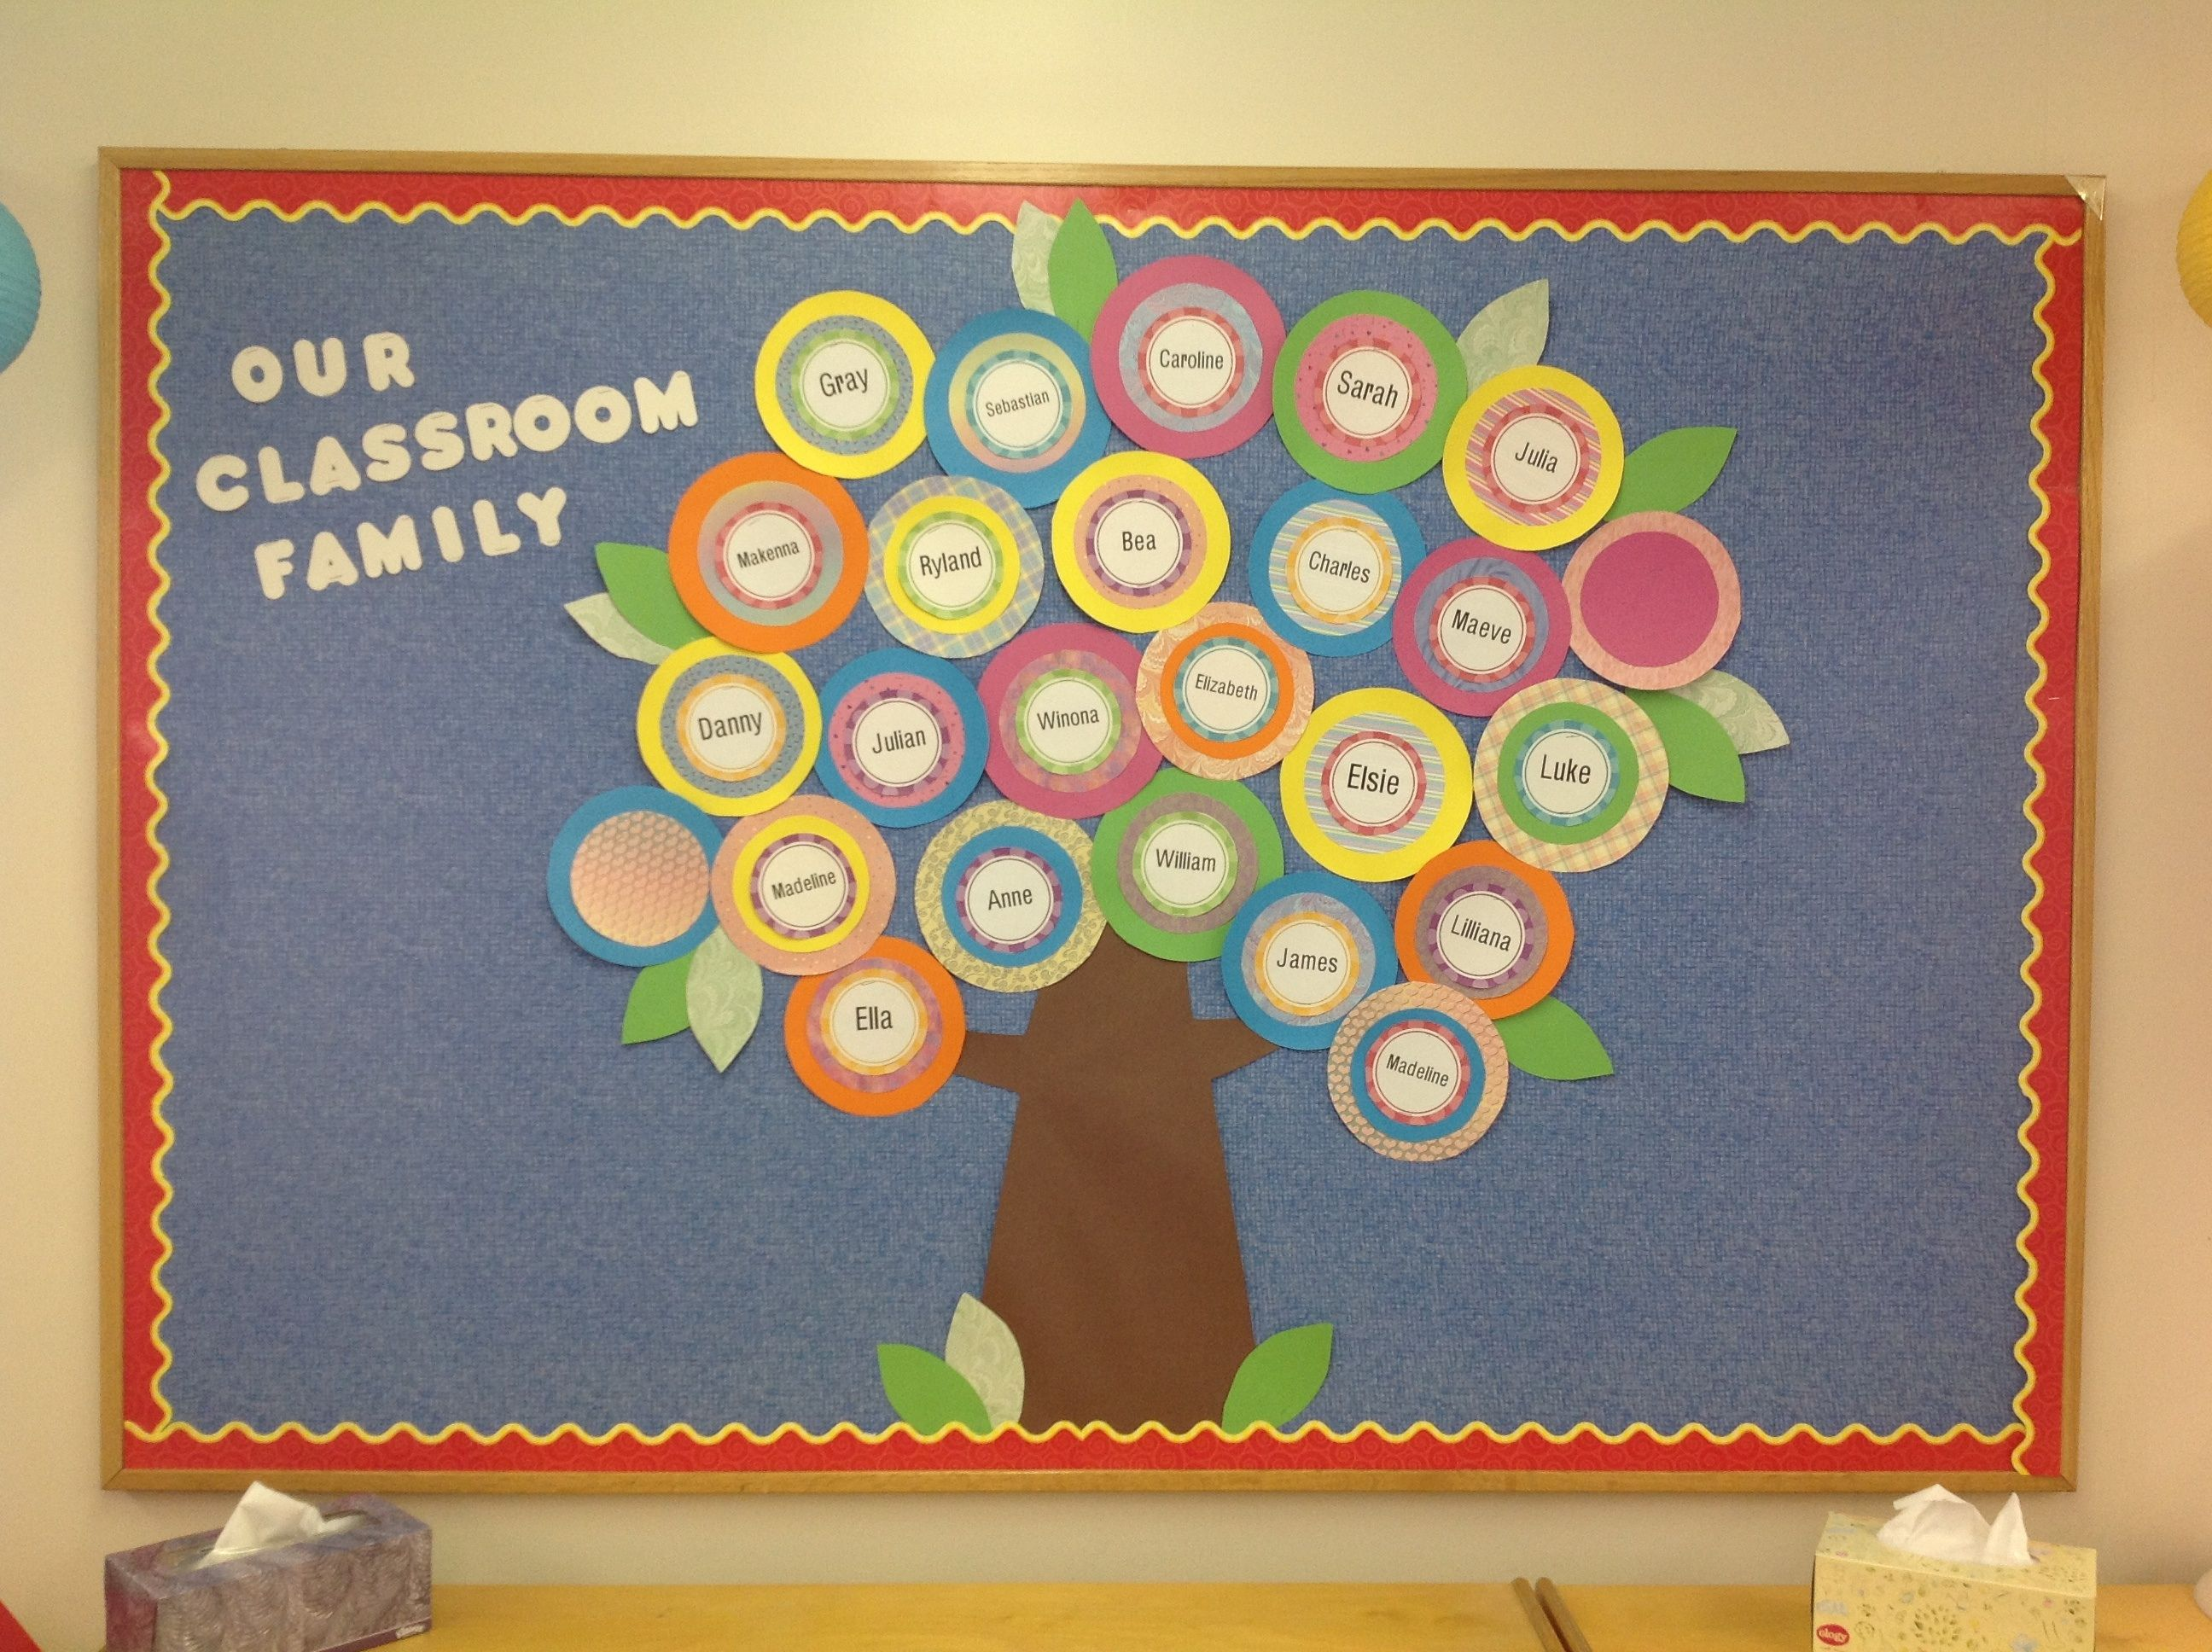 Back to school with our new classroom family tree for Family display board ideas